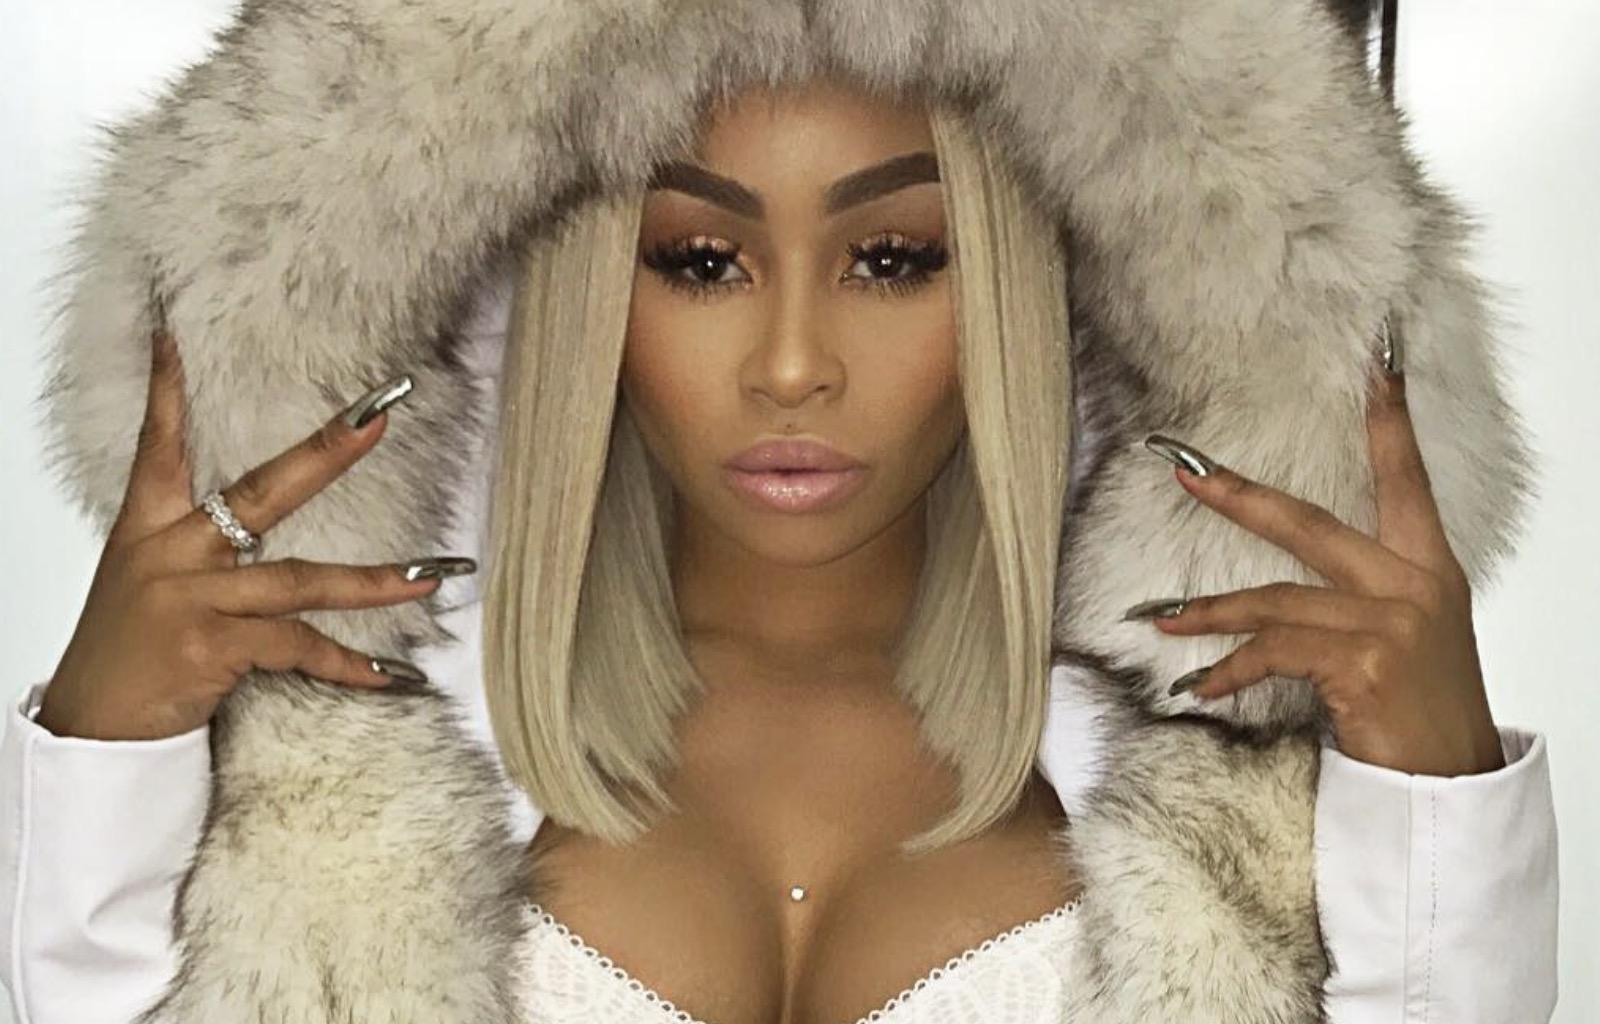 Blac Chyna's Latest Post Has Fans Calling Her 'Boring': 'We Need Some Drama From You'